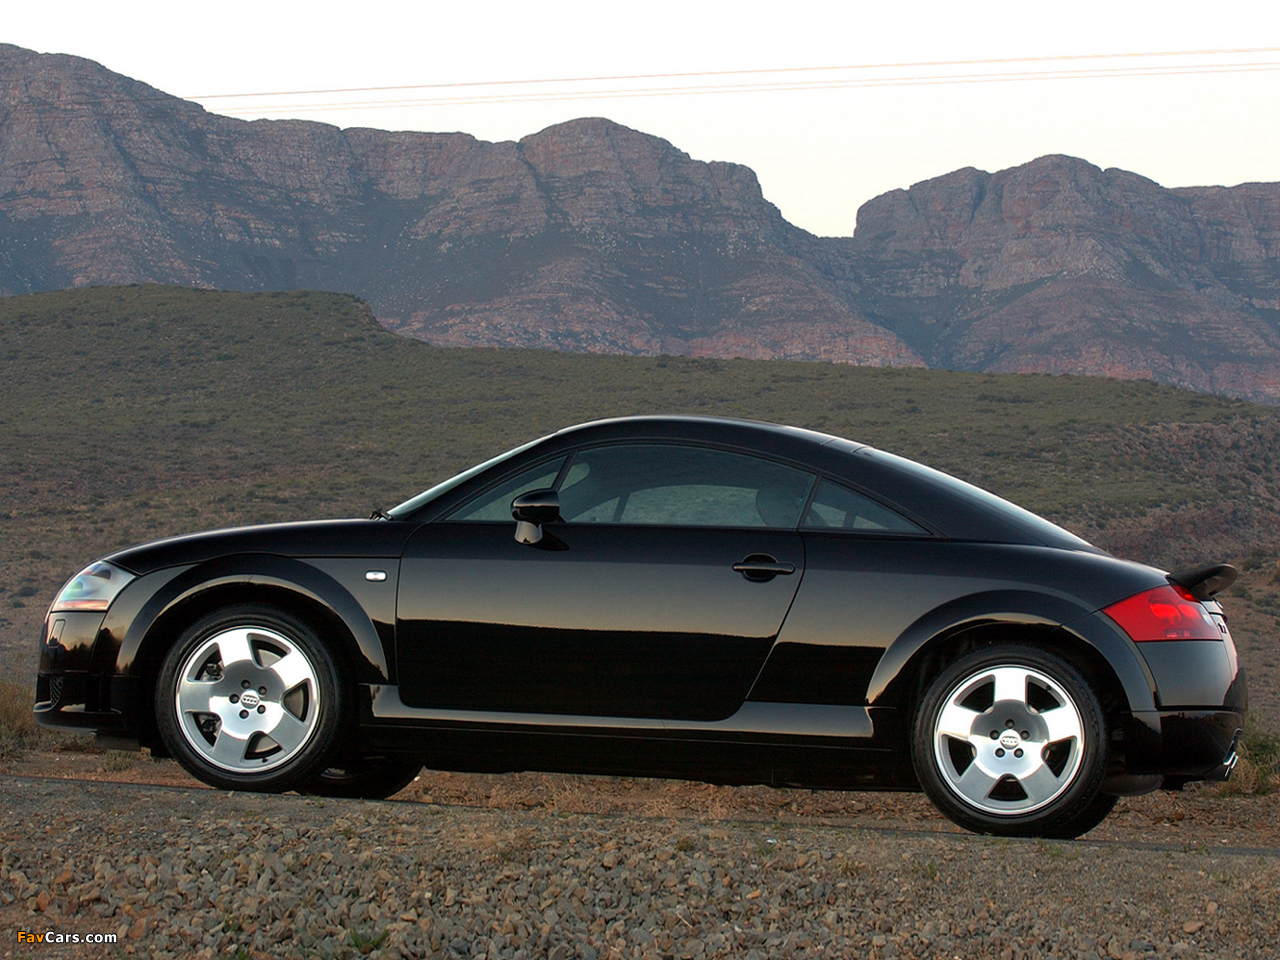 audi tt 3 2 quattro coupe za spec 8n 2003 06 pictures 1280x960. Black Bedroom Furniture Sets. Home Design Ideas